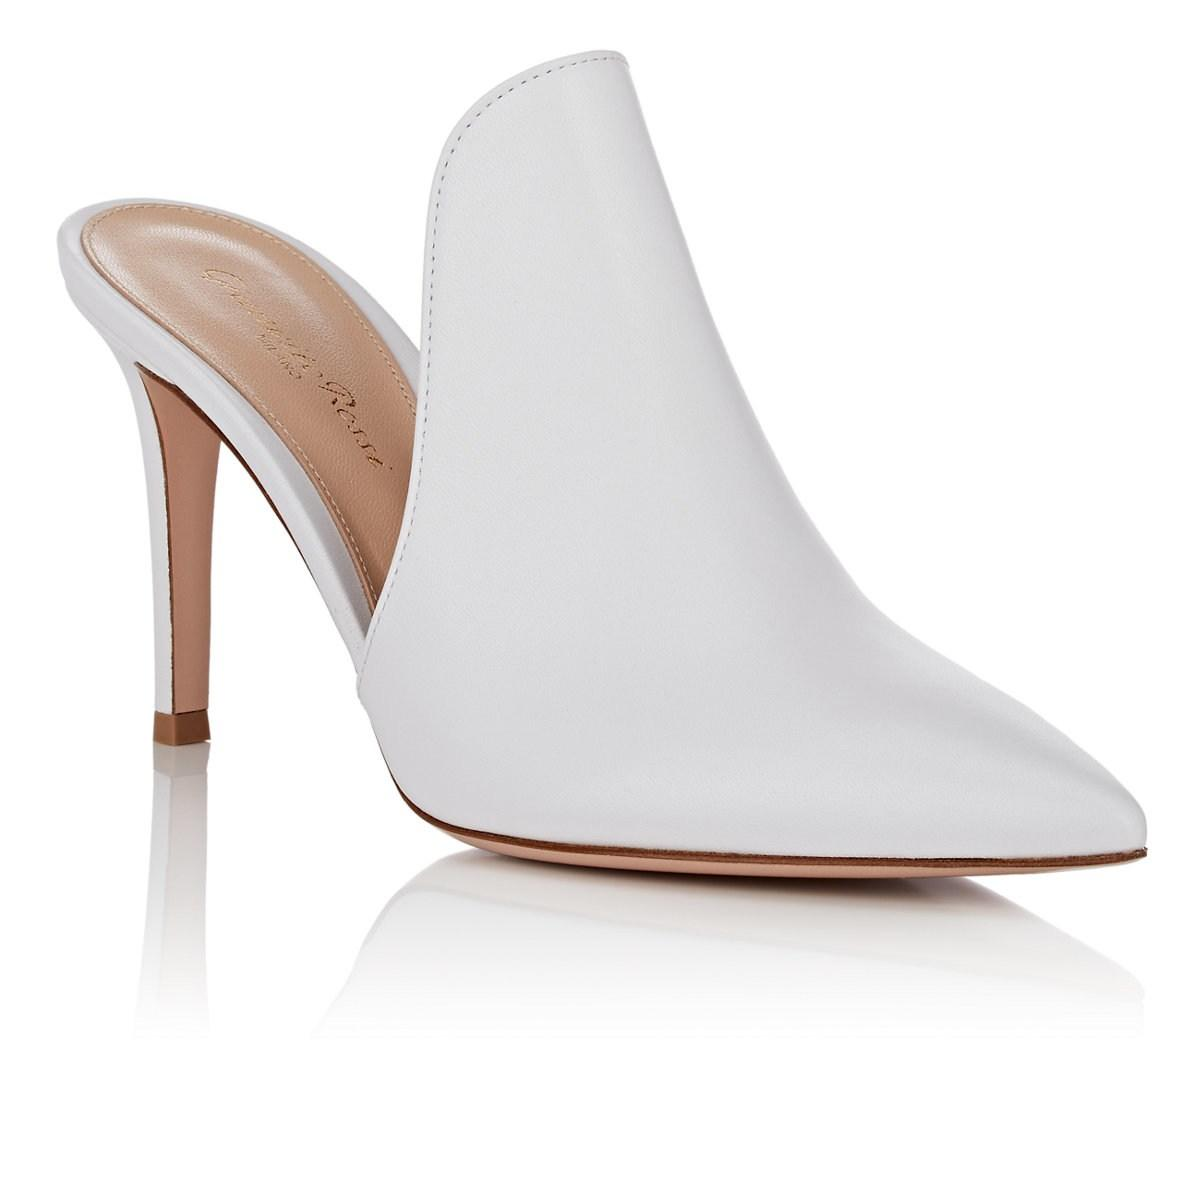 5b0464d6c3a Gianvito Rossi - White Aramis Leather Mules - Lyst. View fullscreen